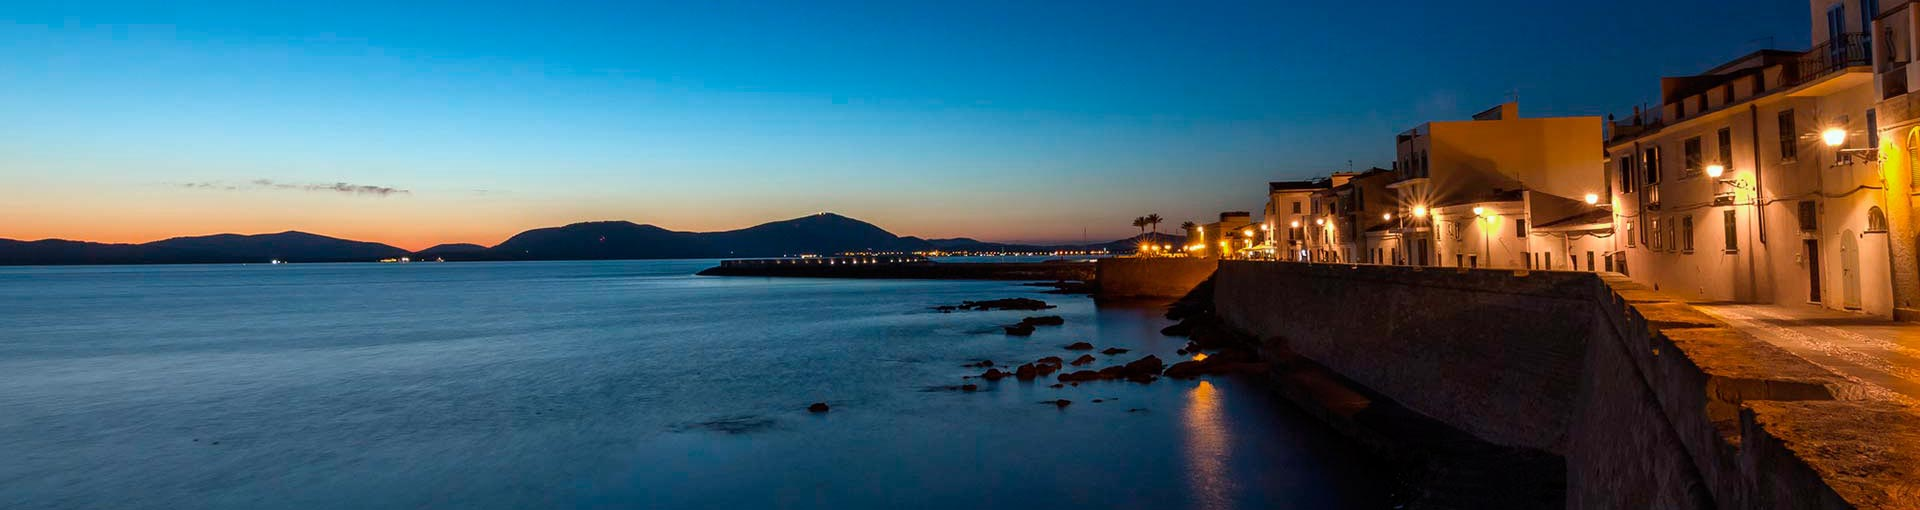 alghero-featured-img